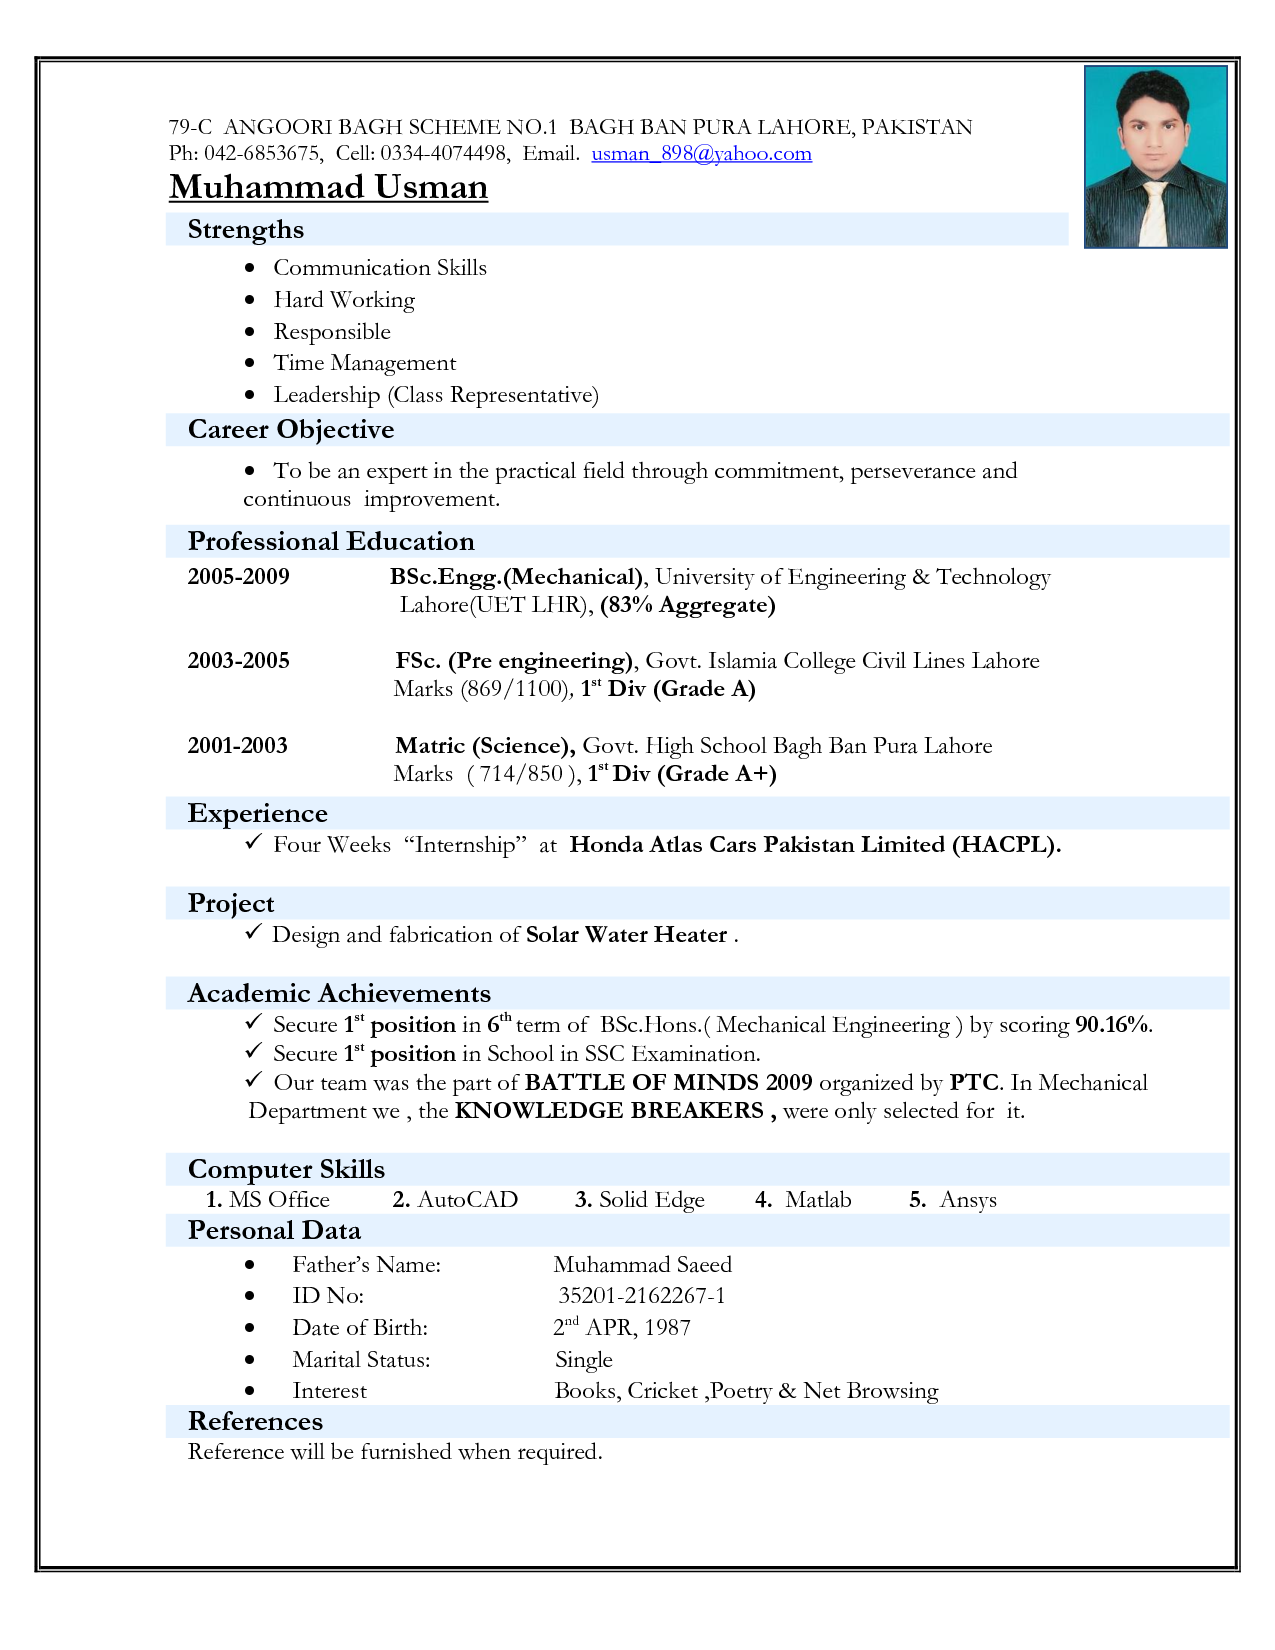 Resume Format For 2 Years Experienced Software Engineer Pin By Aa Abhimanyu On Resumes Resume Format Resume